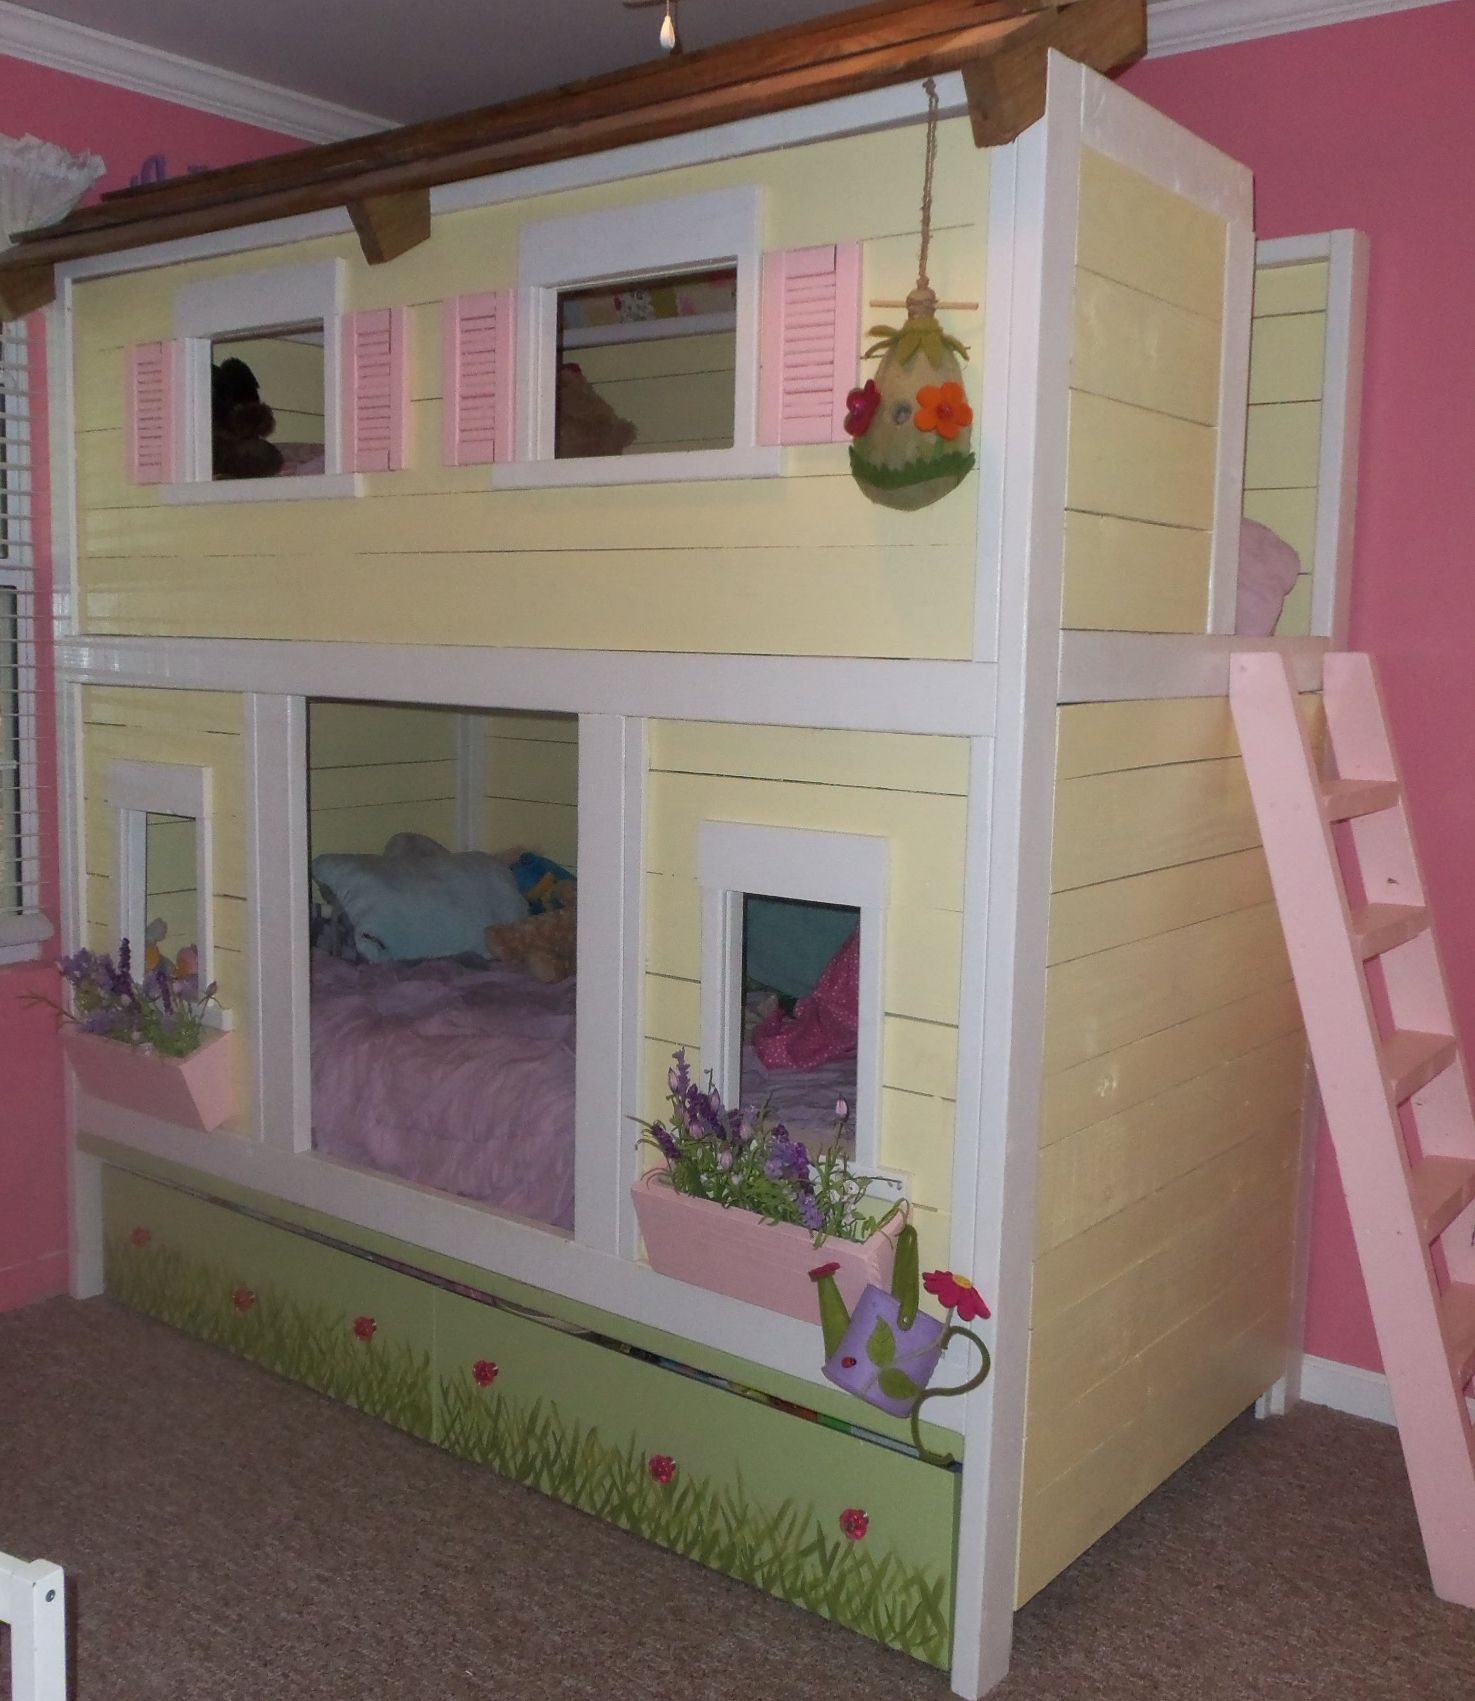 House Bunk Bed Cody Has Already Enclosed Allies Bunk Bed And Turned The Top Into